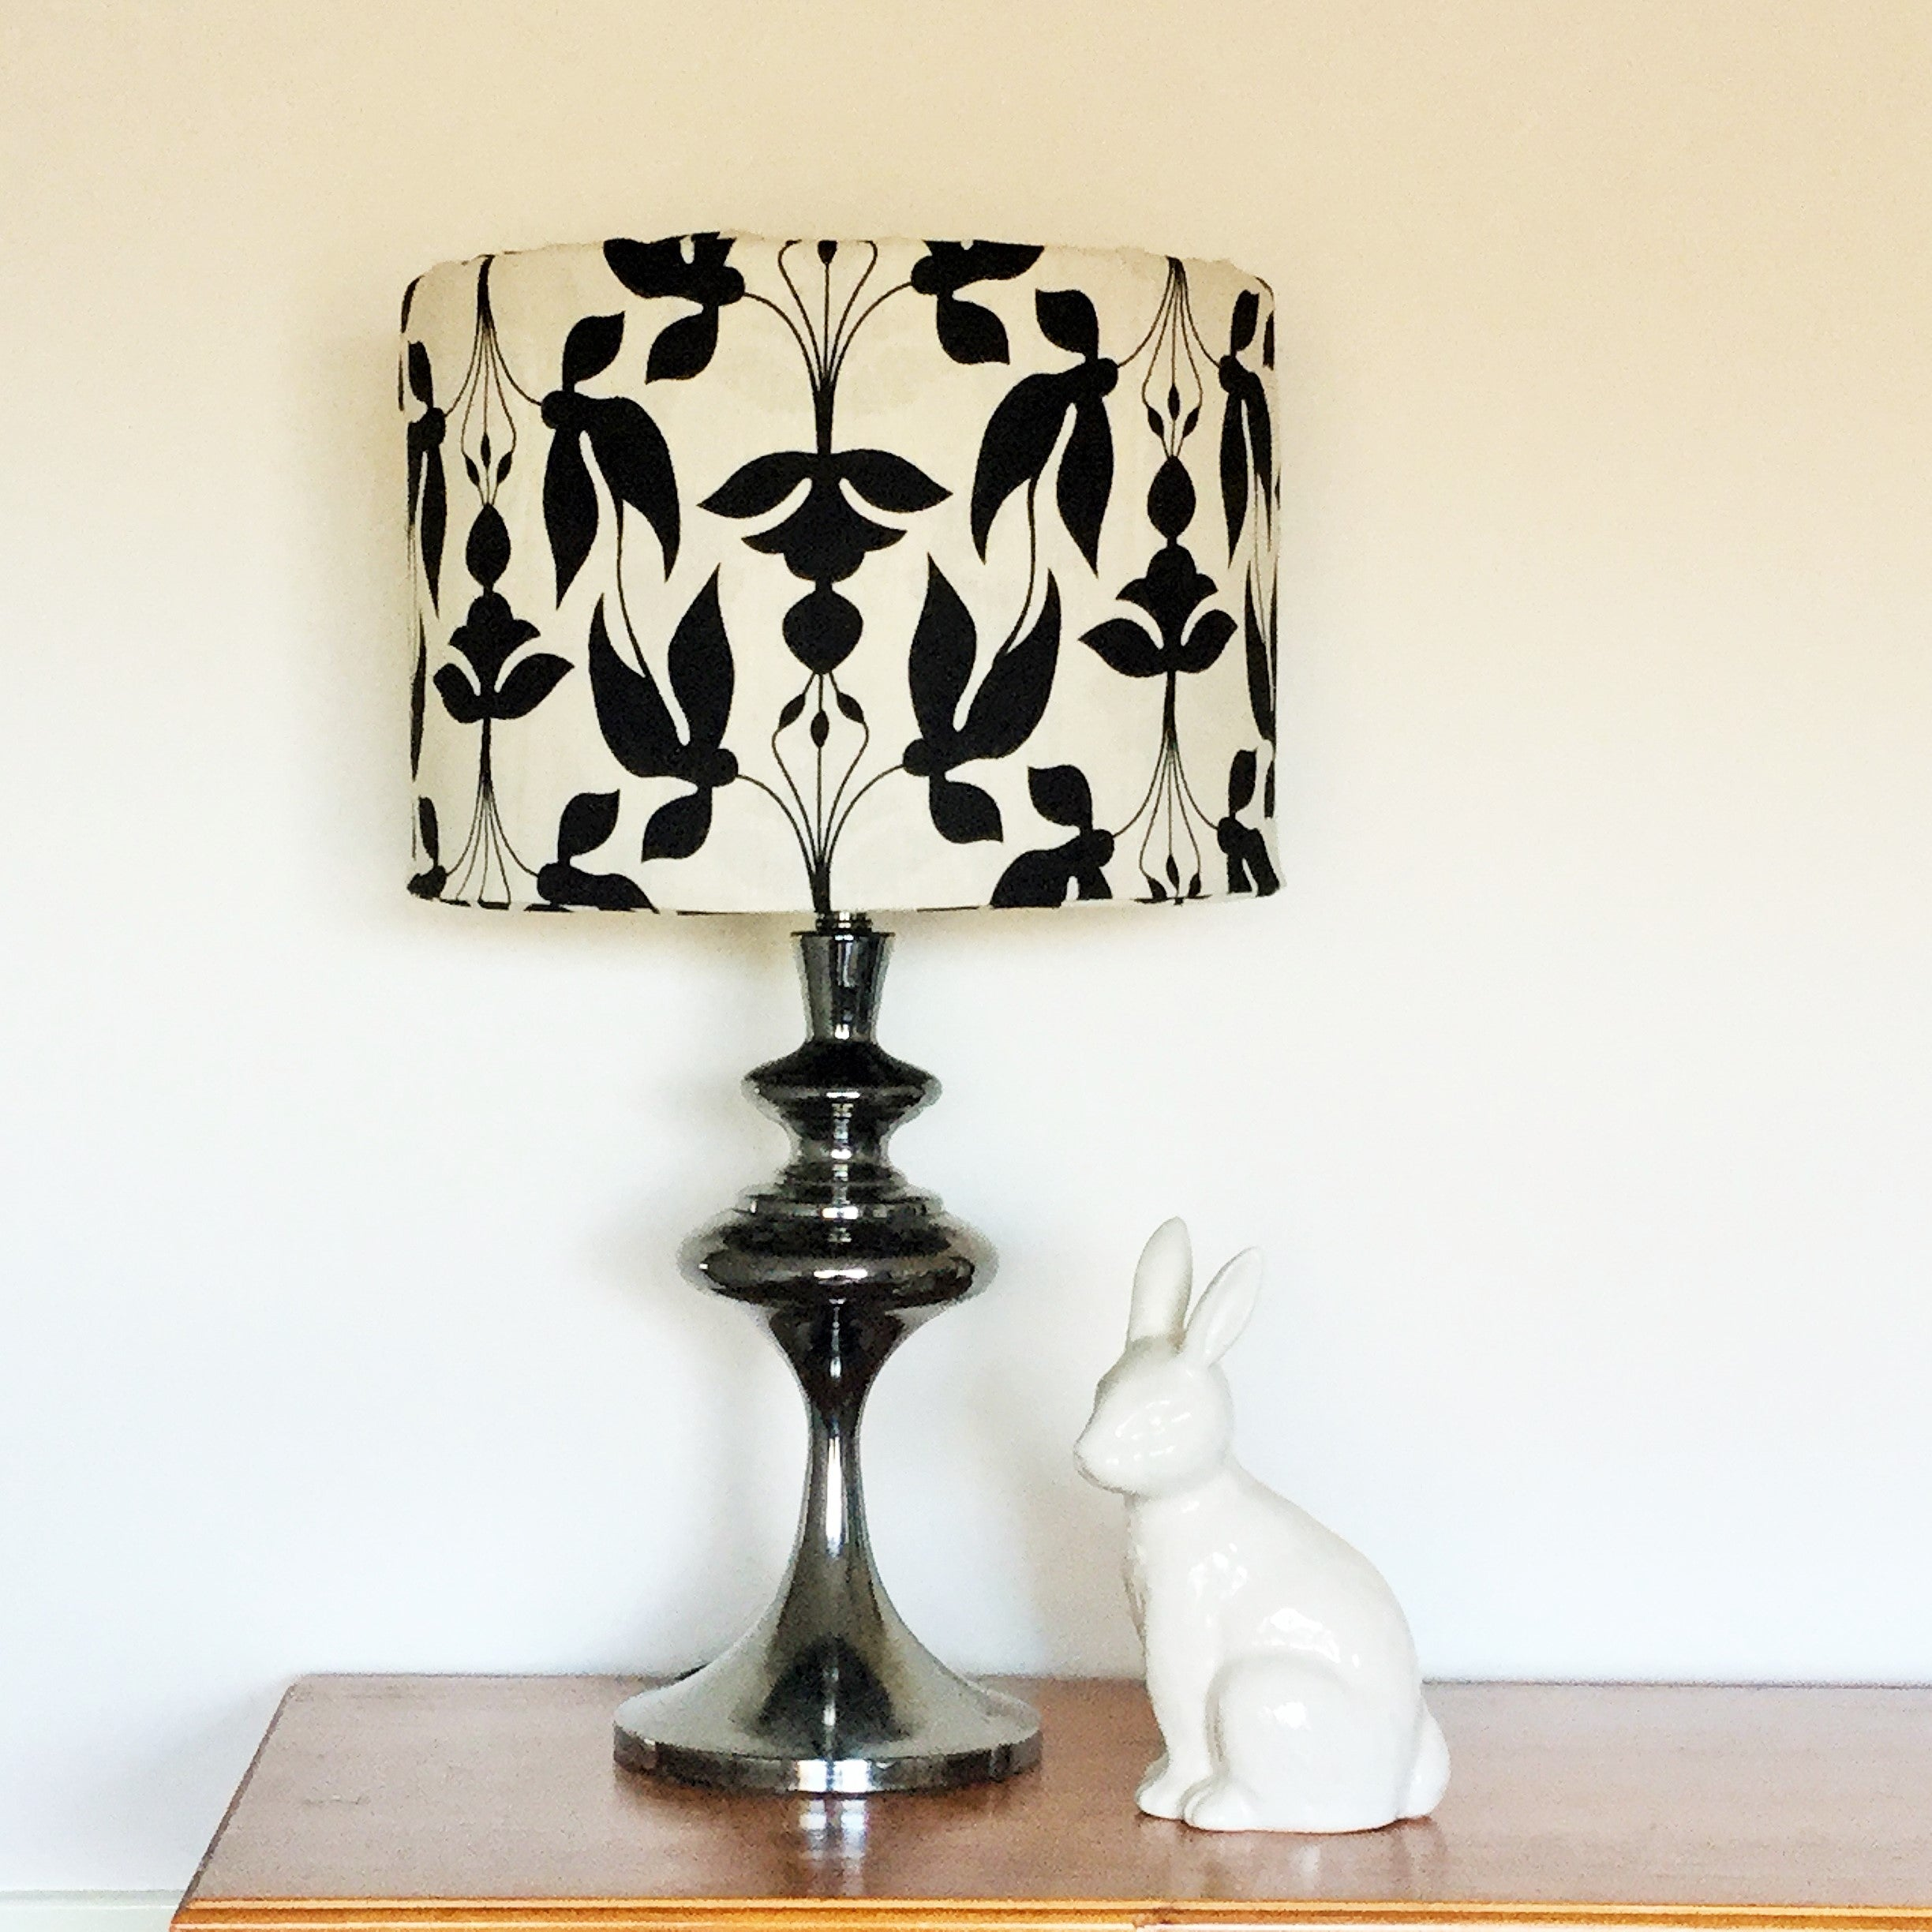 Custom Lamp Shade only - Black Seed Pods on Linen